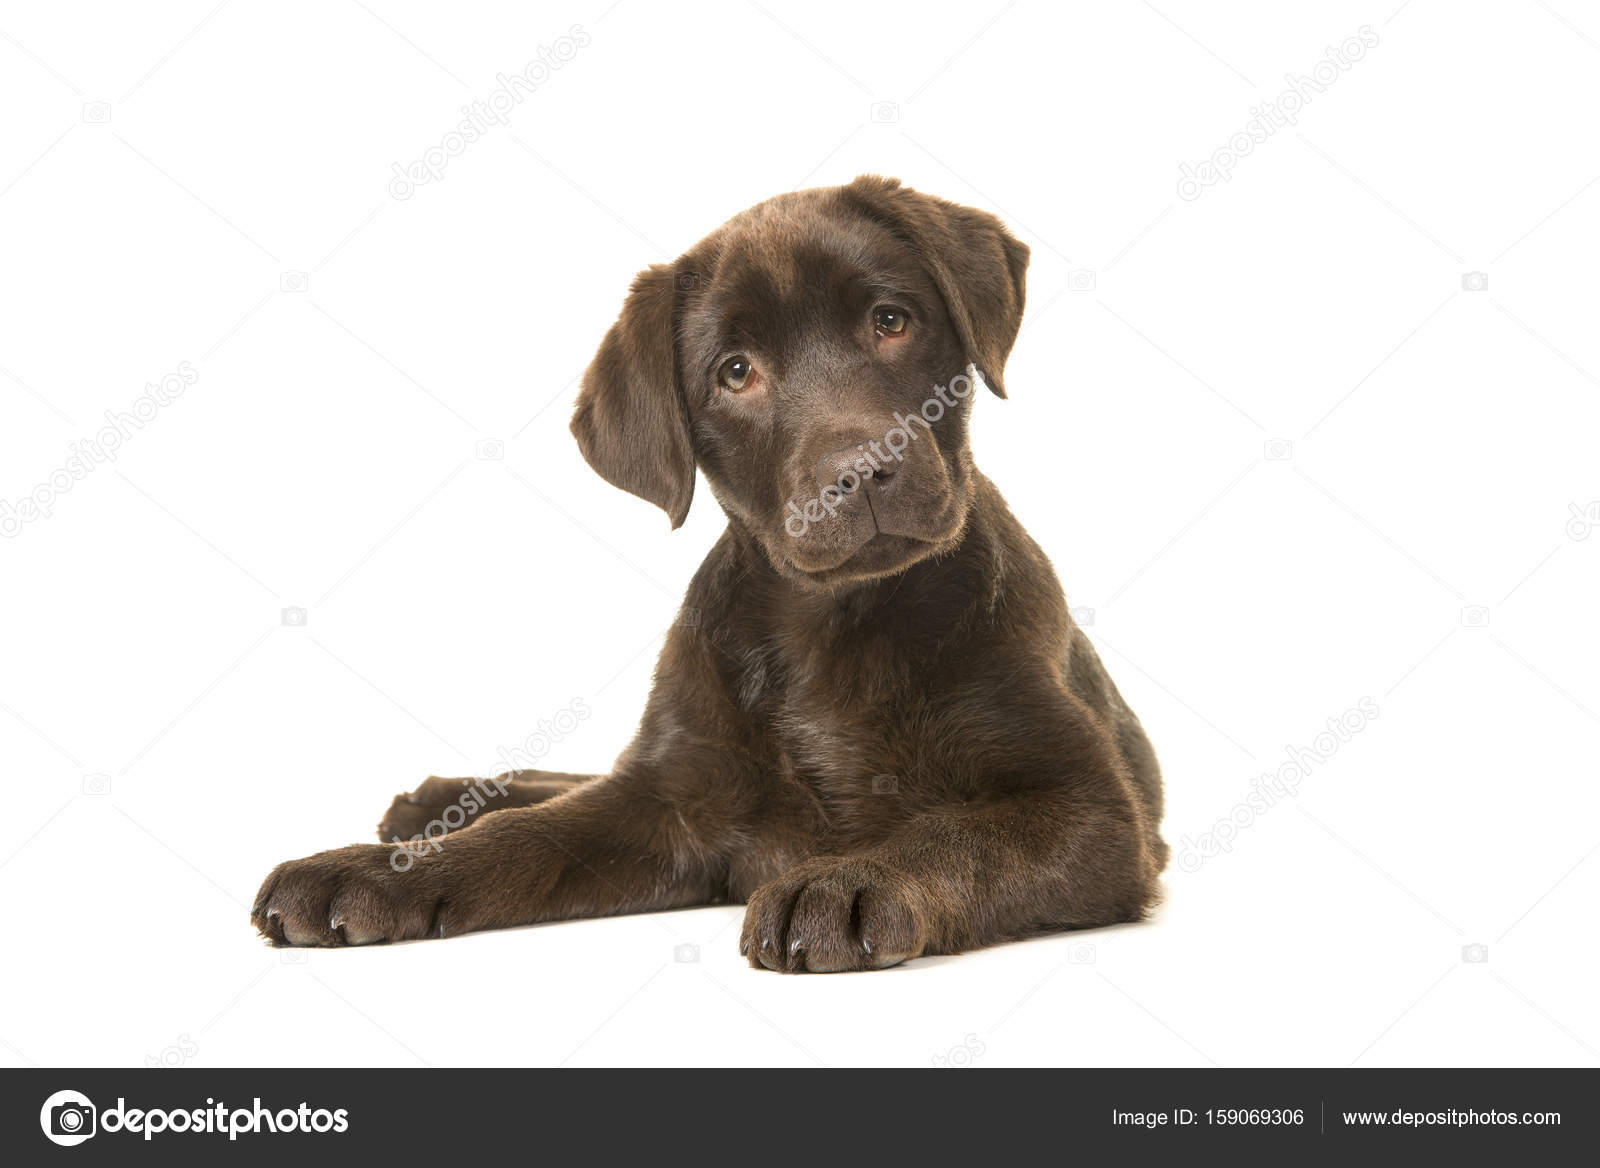 Labrador 4 Meses 4 Months Old Brown Labrador Retriever Puppy Lying Down Seen From